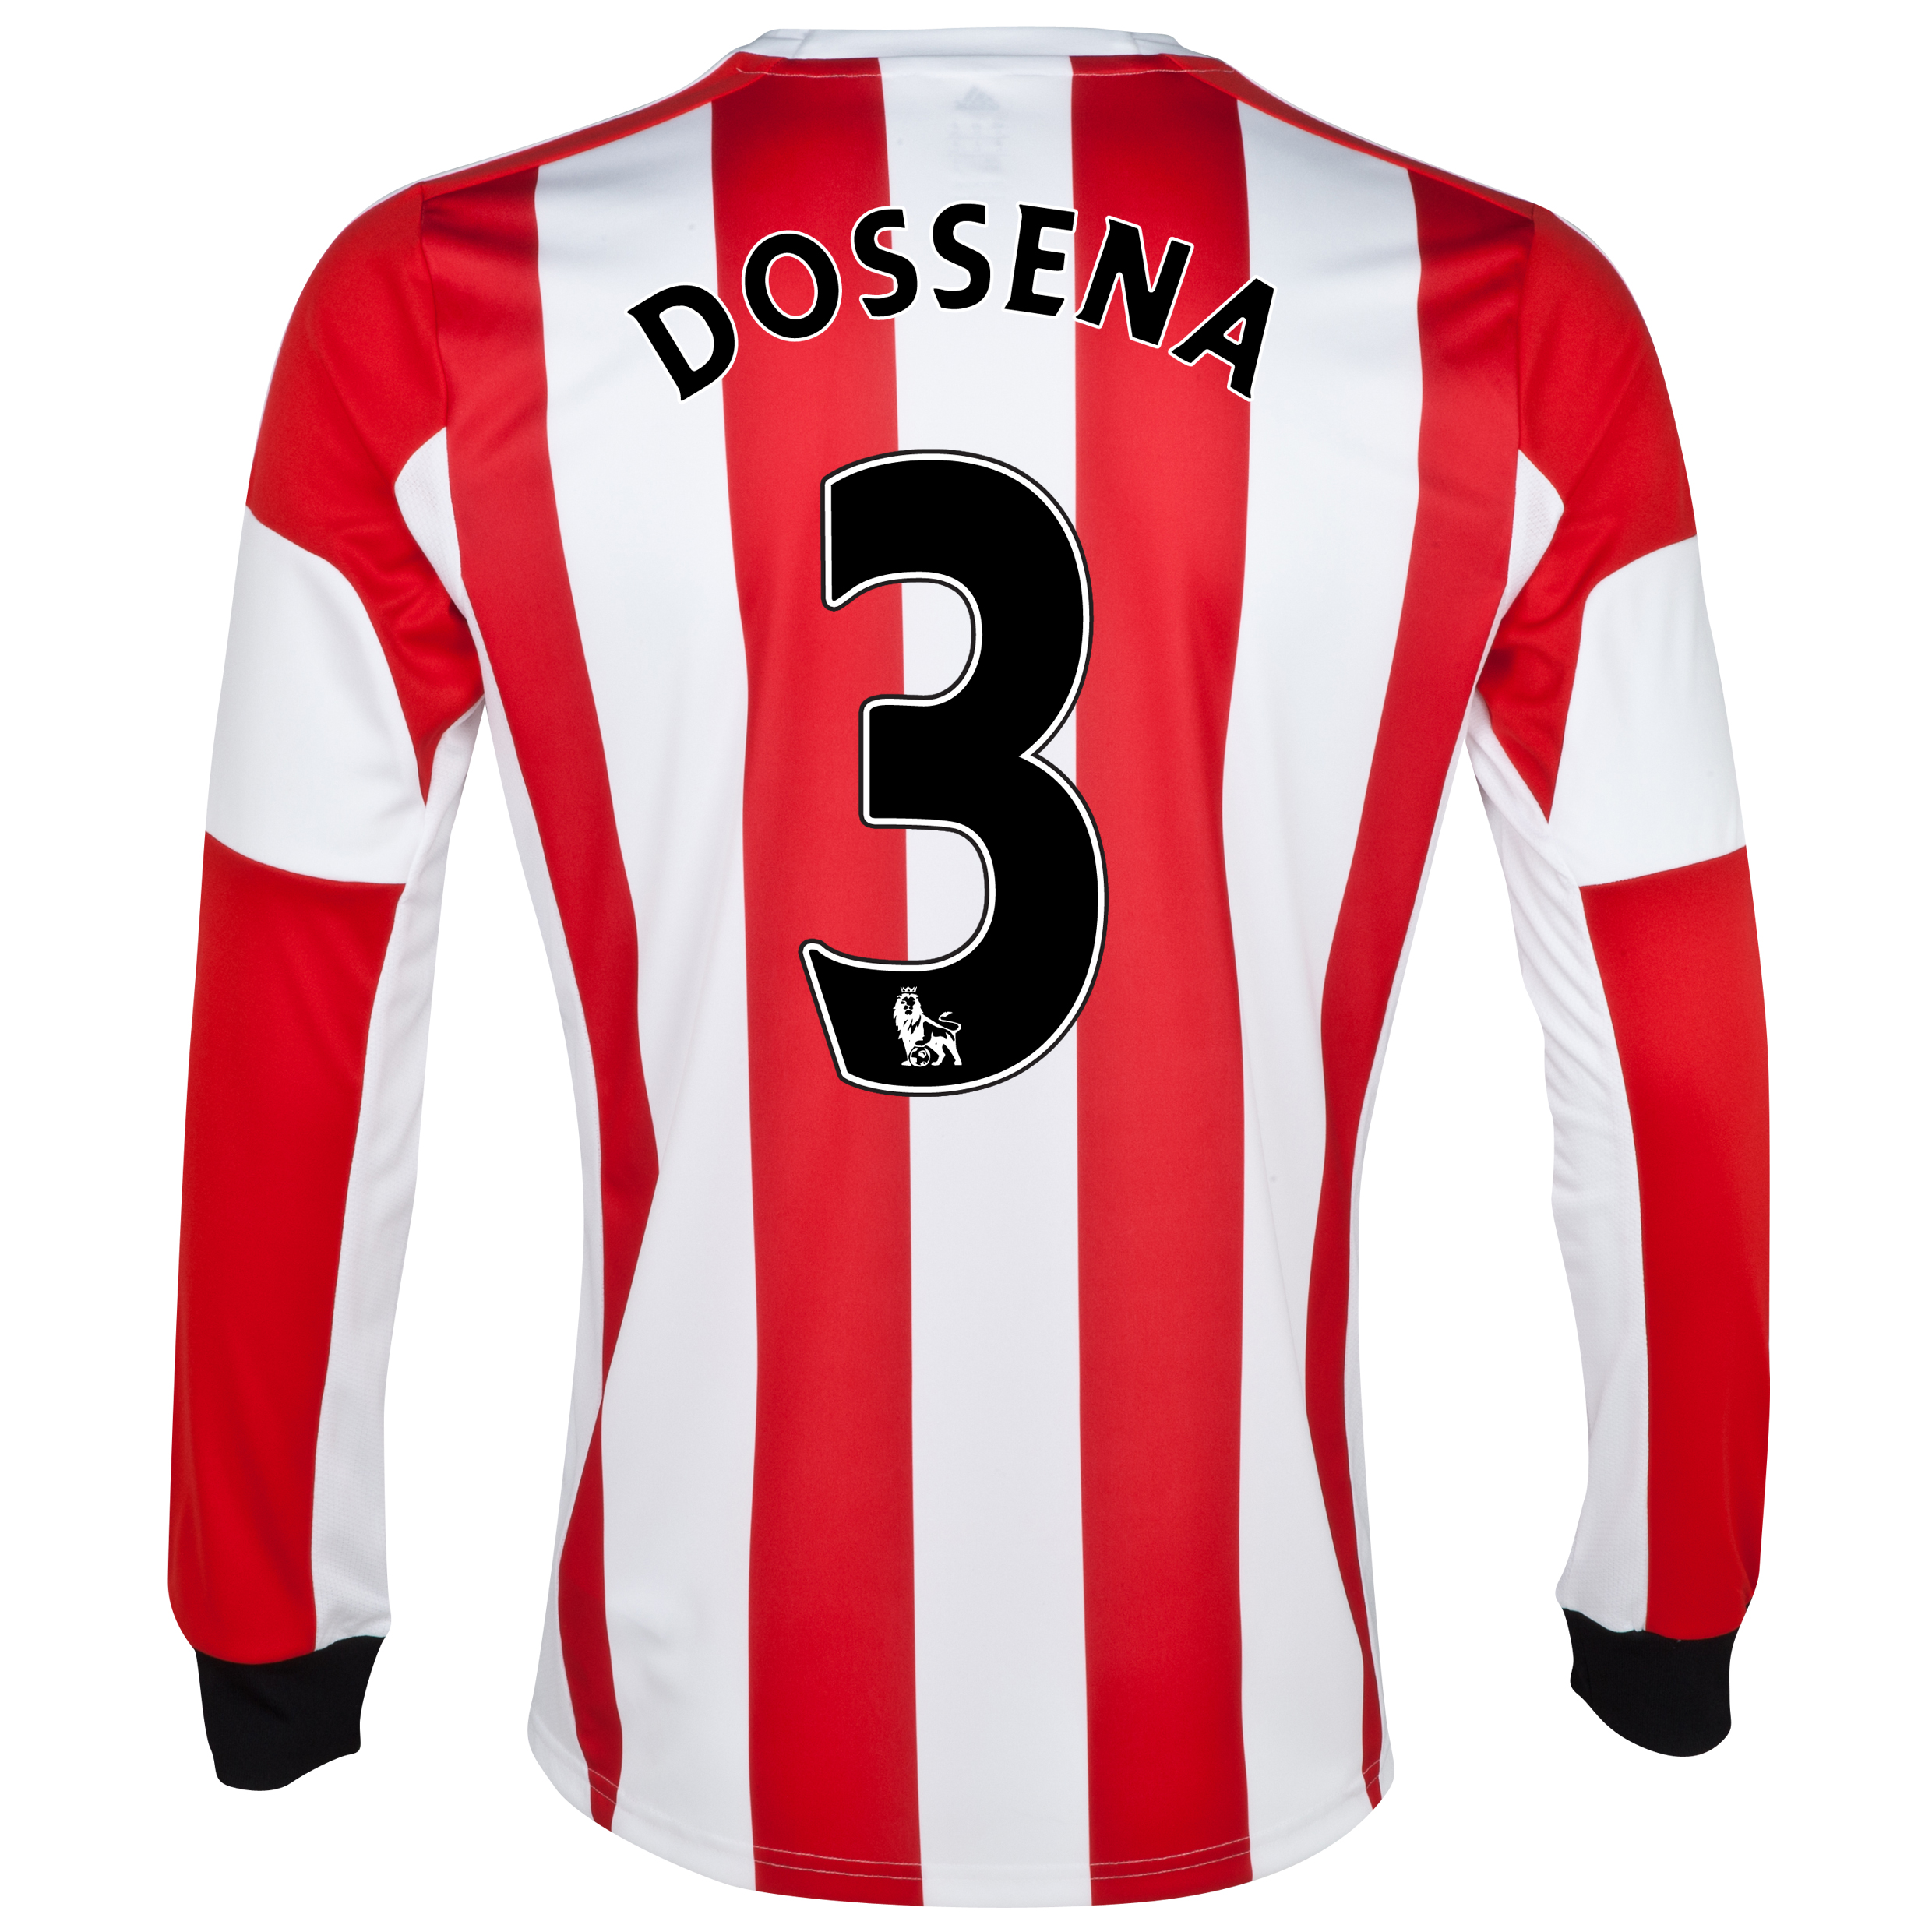 Sunderland Home Shirt 2013/14 - Long Sleeved - Junior with Dossena 3 printing